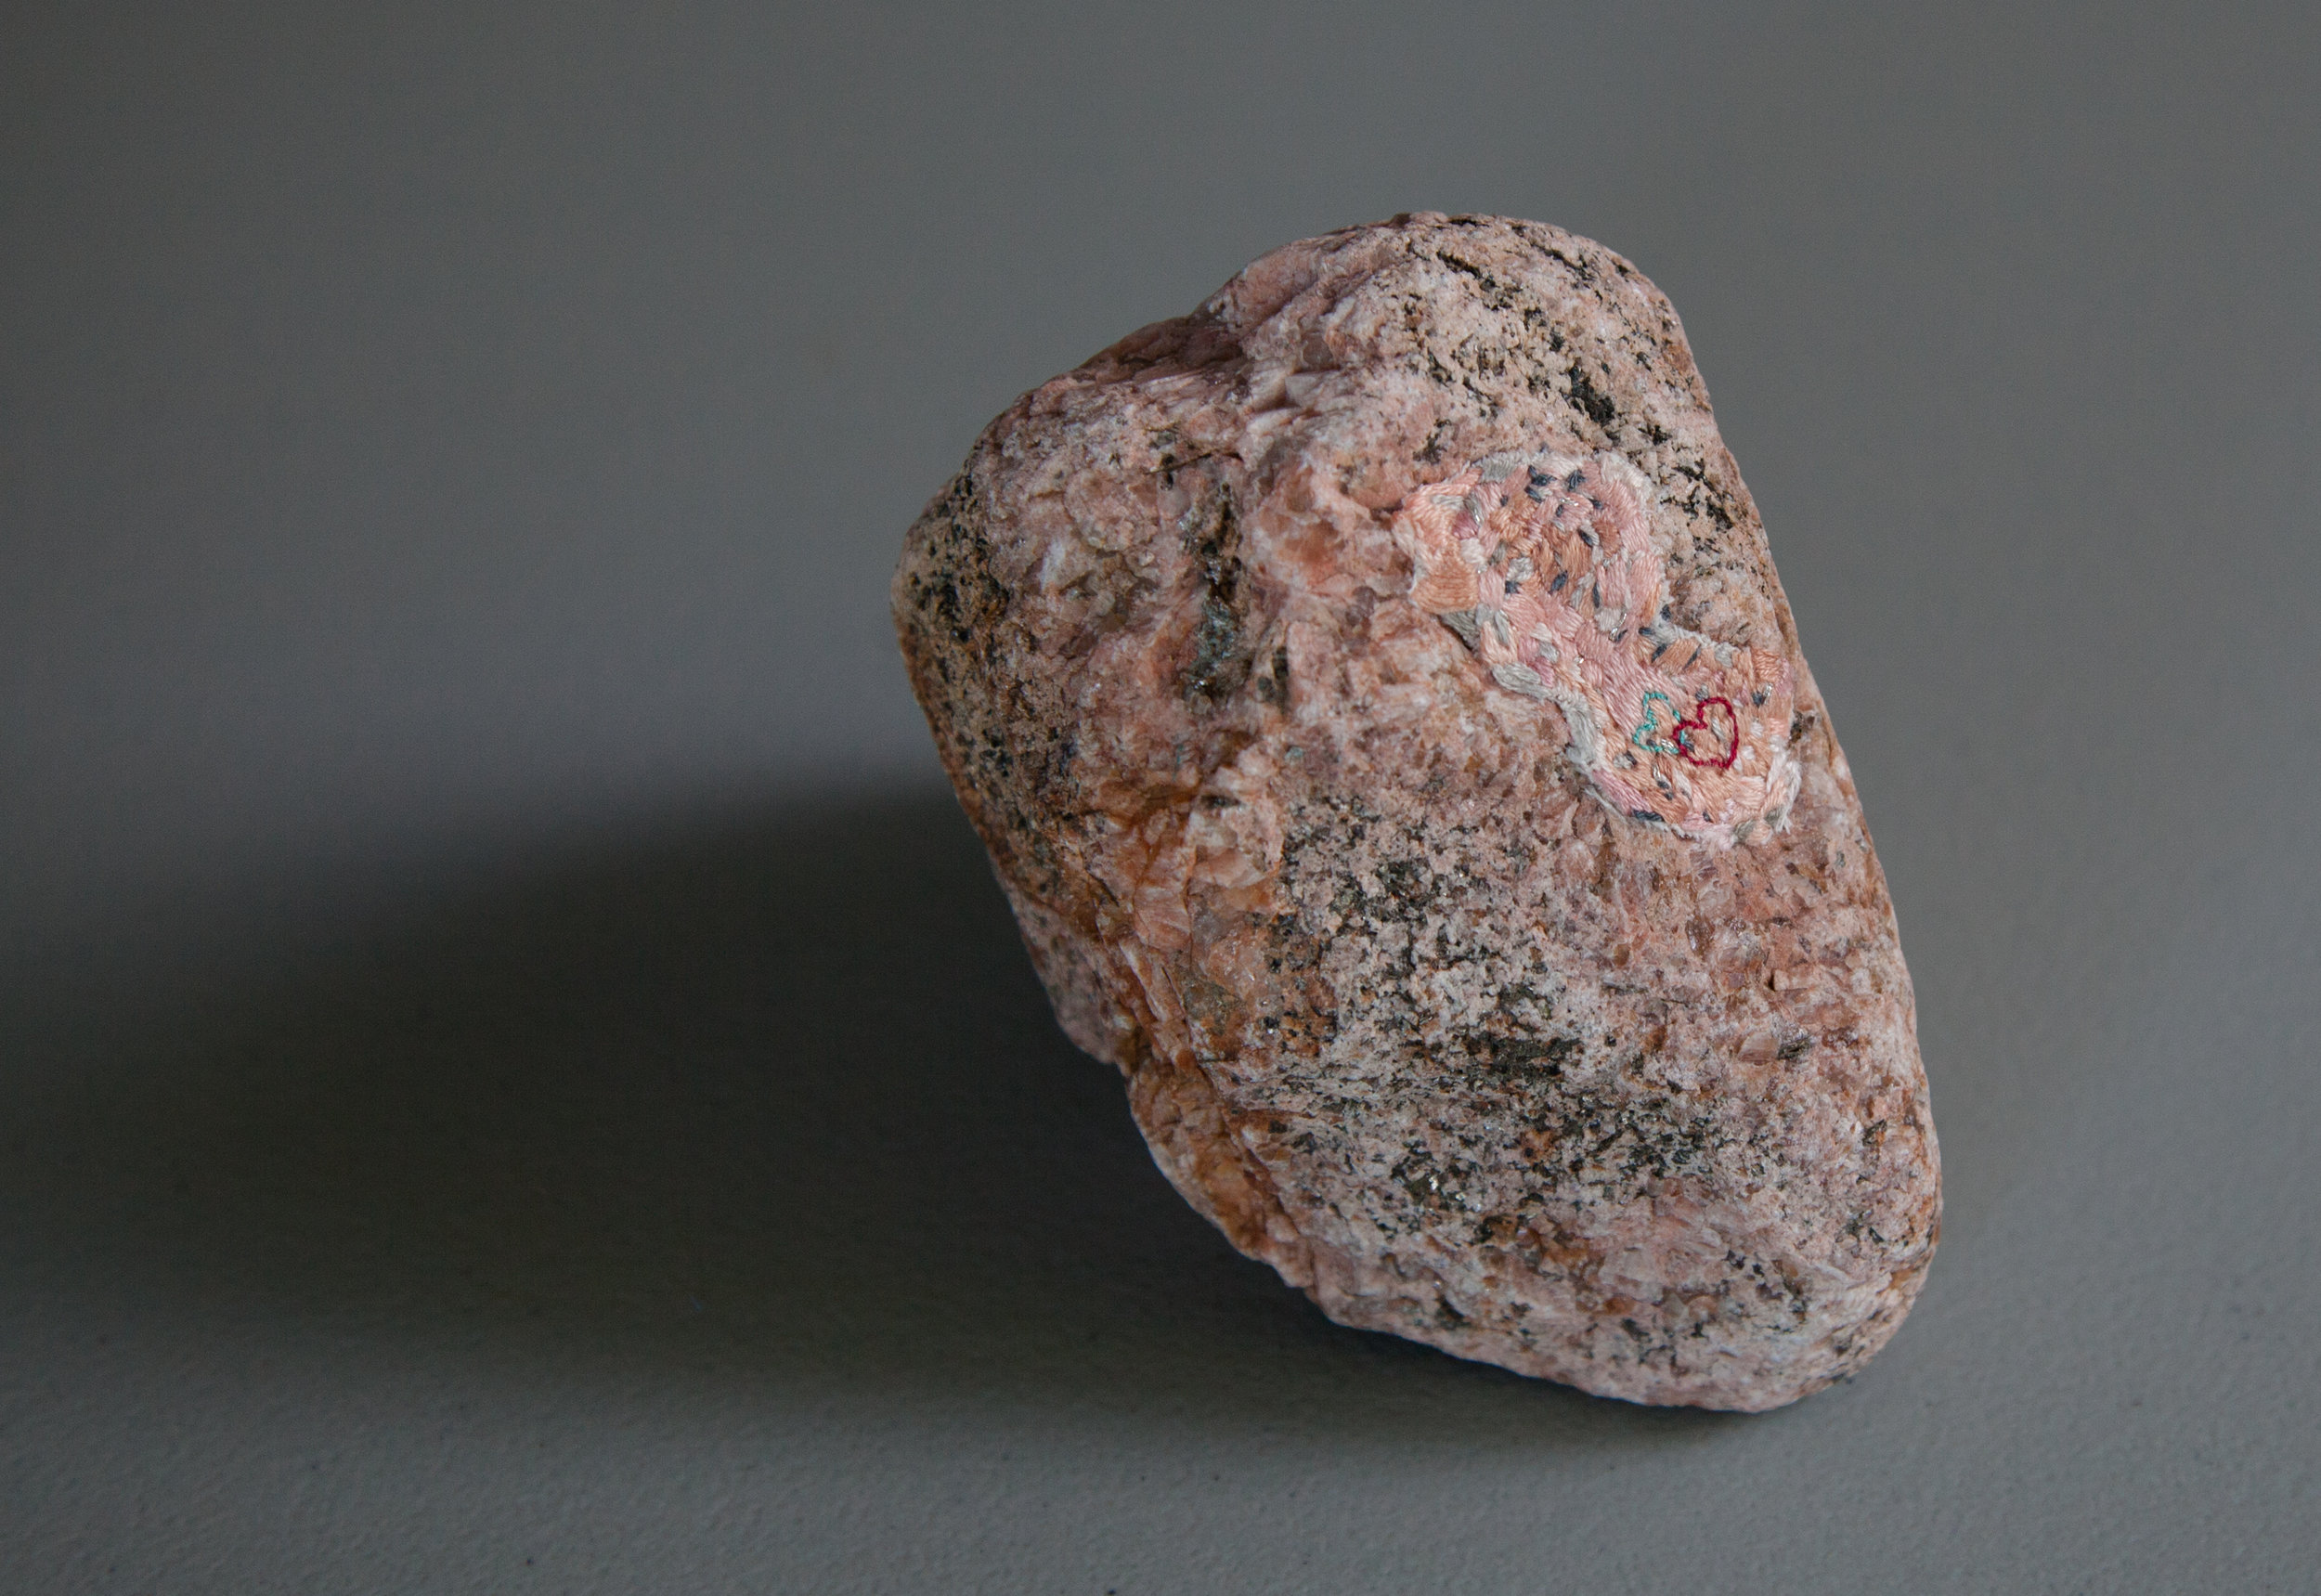 pink granite and embriodery, aprx. 6 inches high, 2016